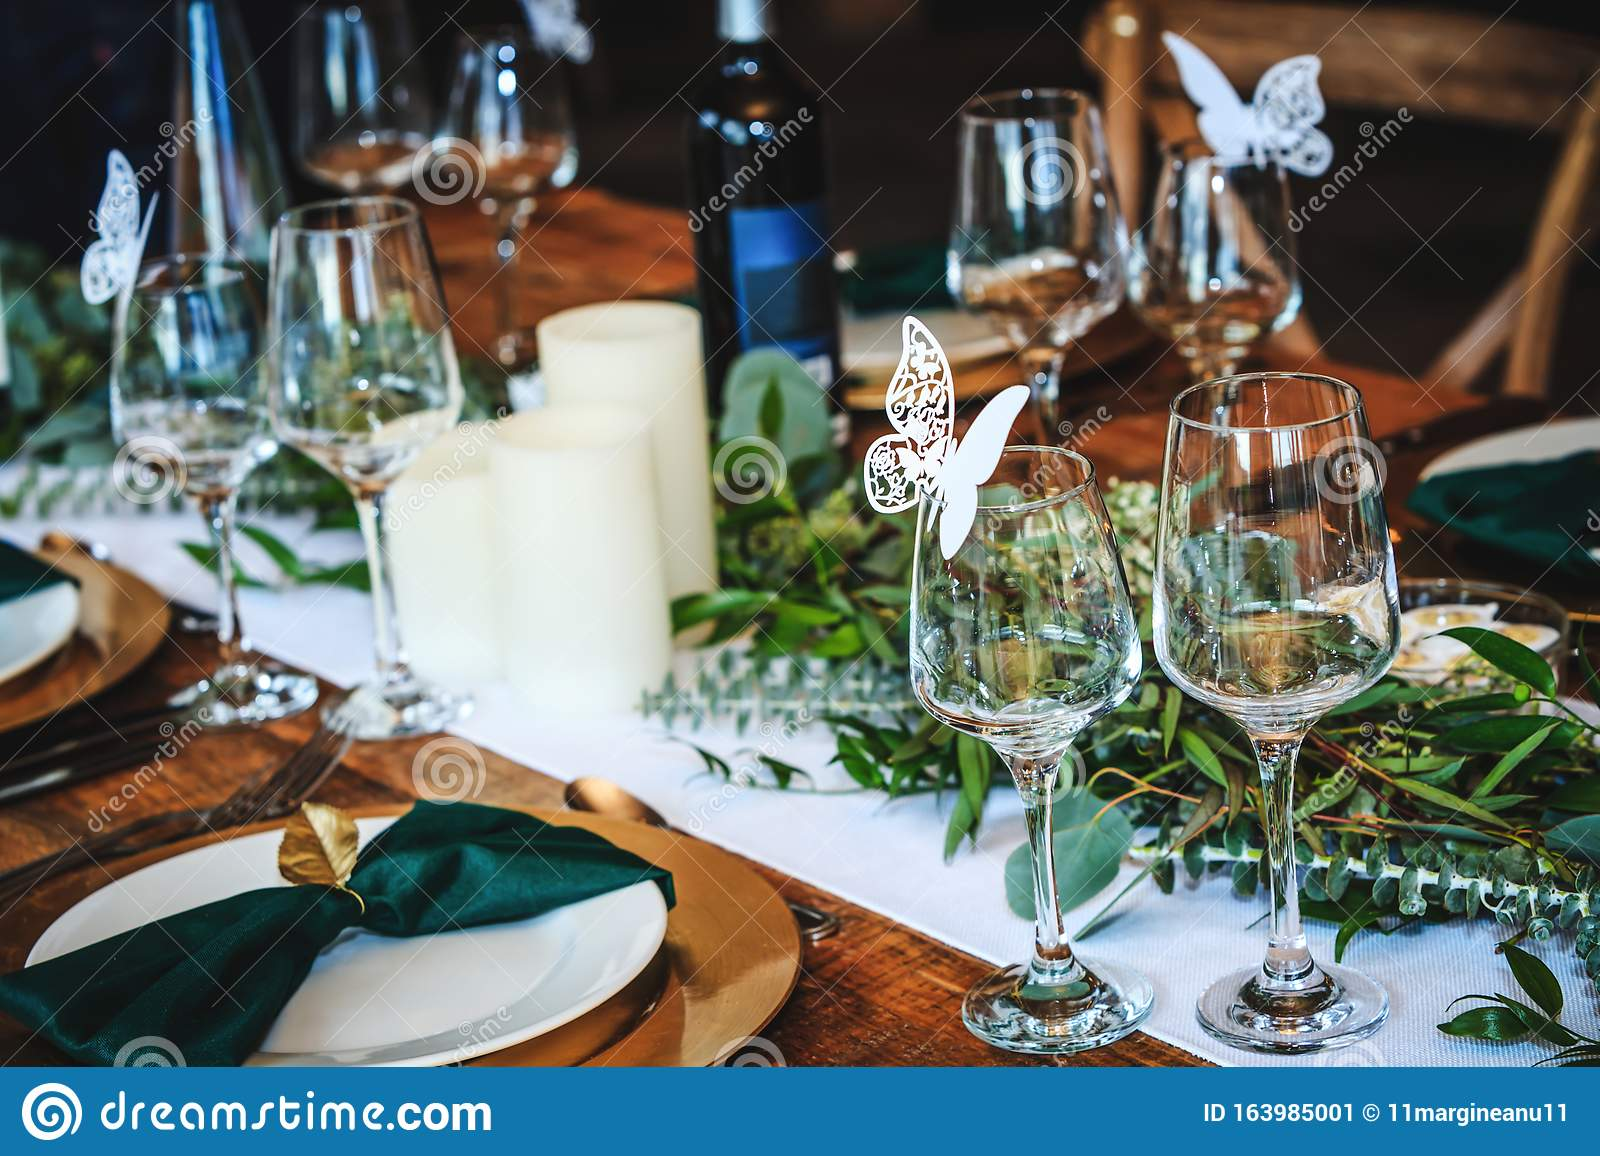 Rustic Wedding Table Setting In Fancy American Restaurant Vintage Decoration Of Reception Table Elegant Arrangement Of The Stock Image Image Of Dinnerware Food 163985001